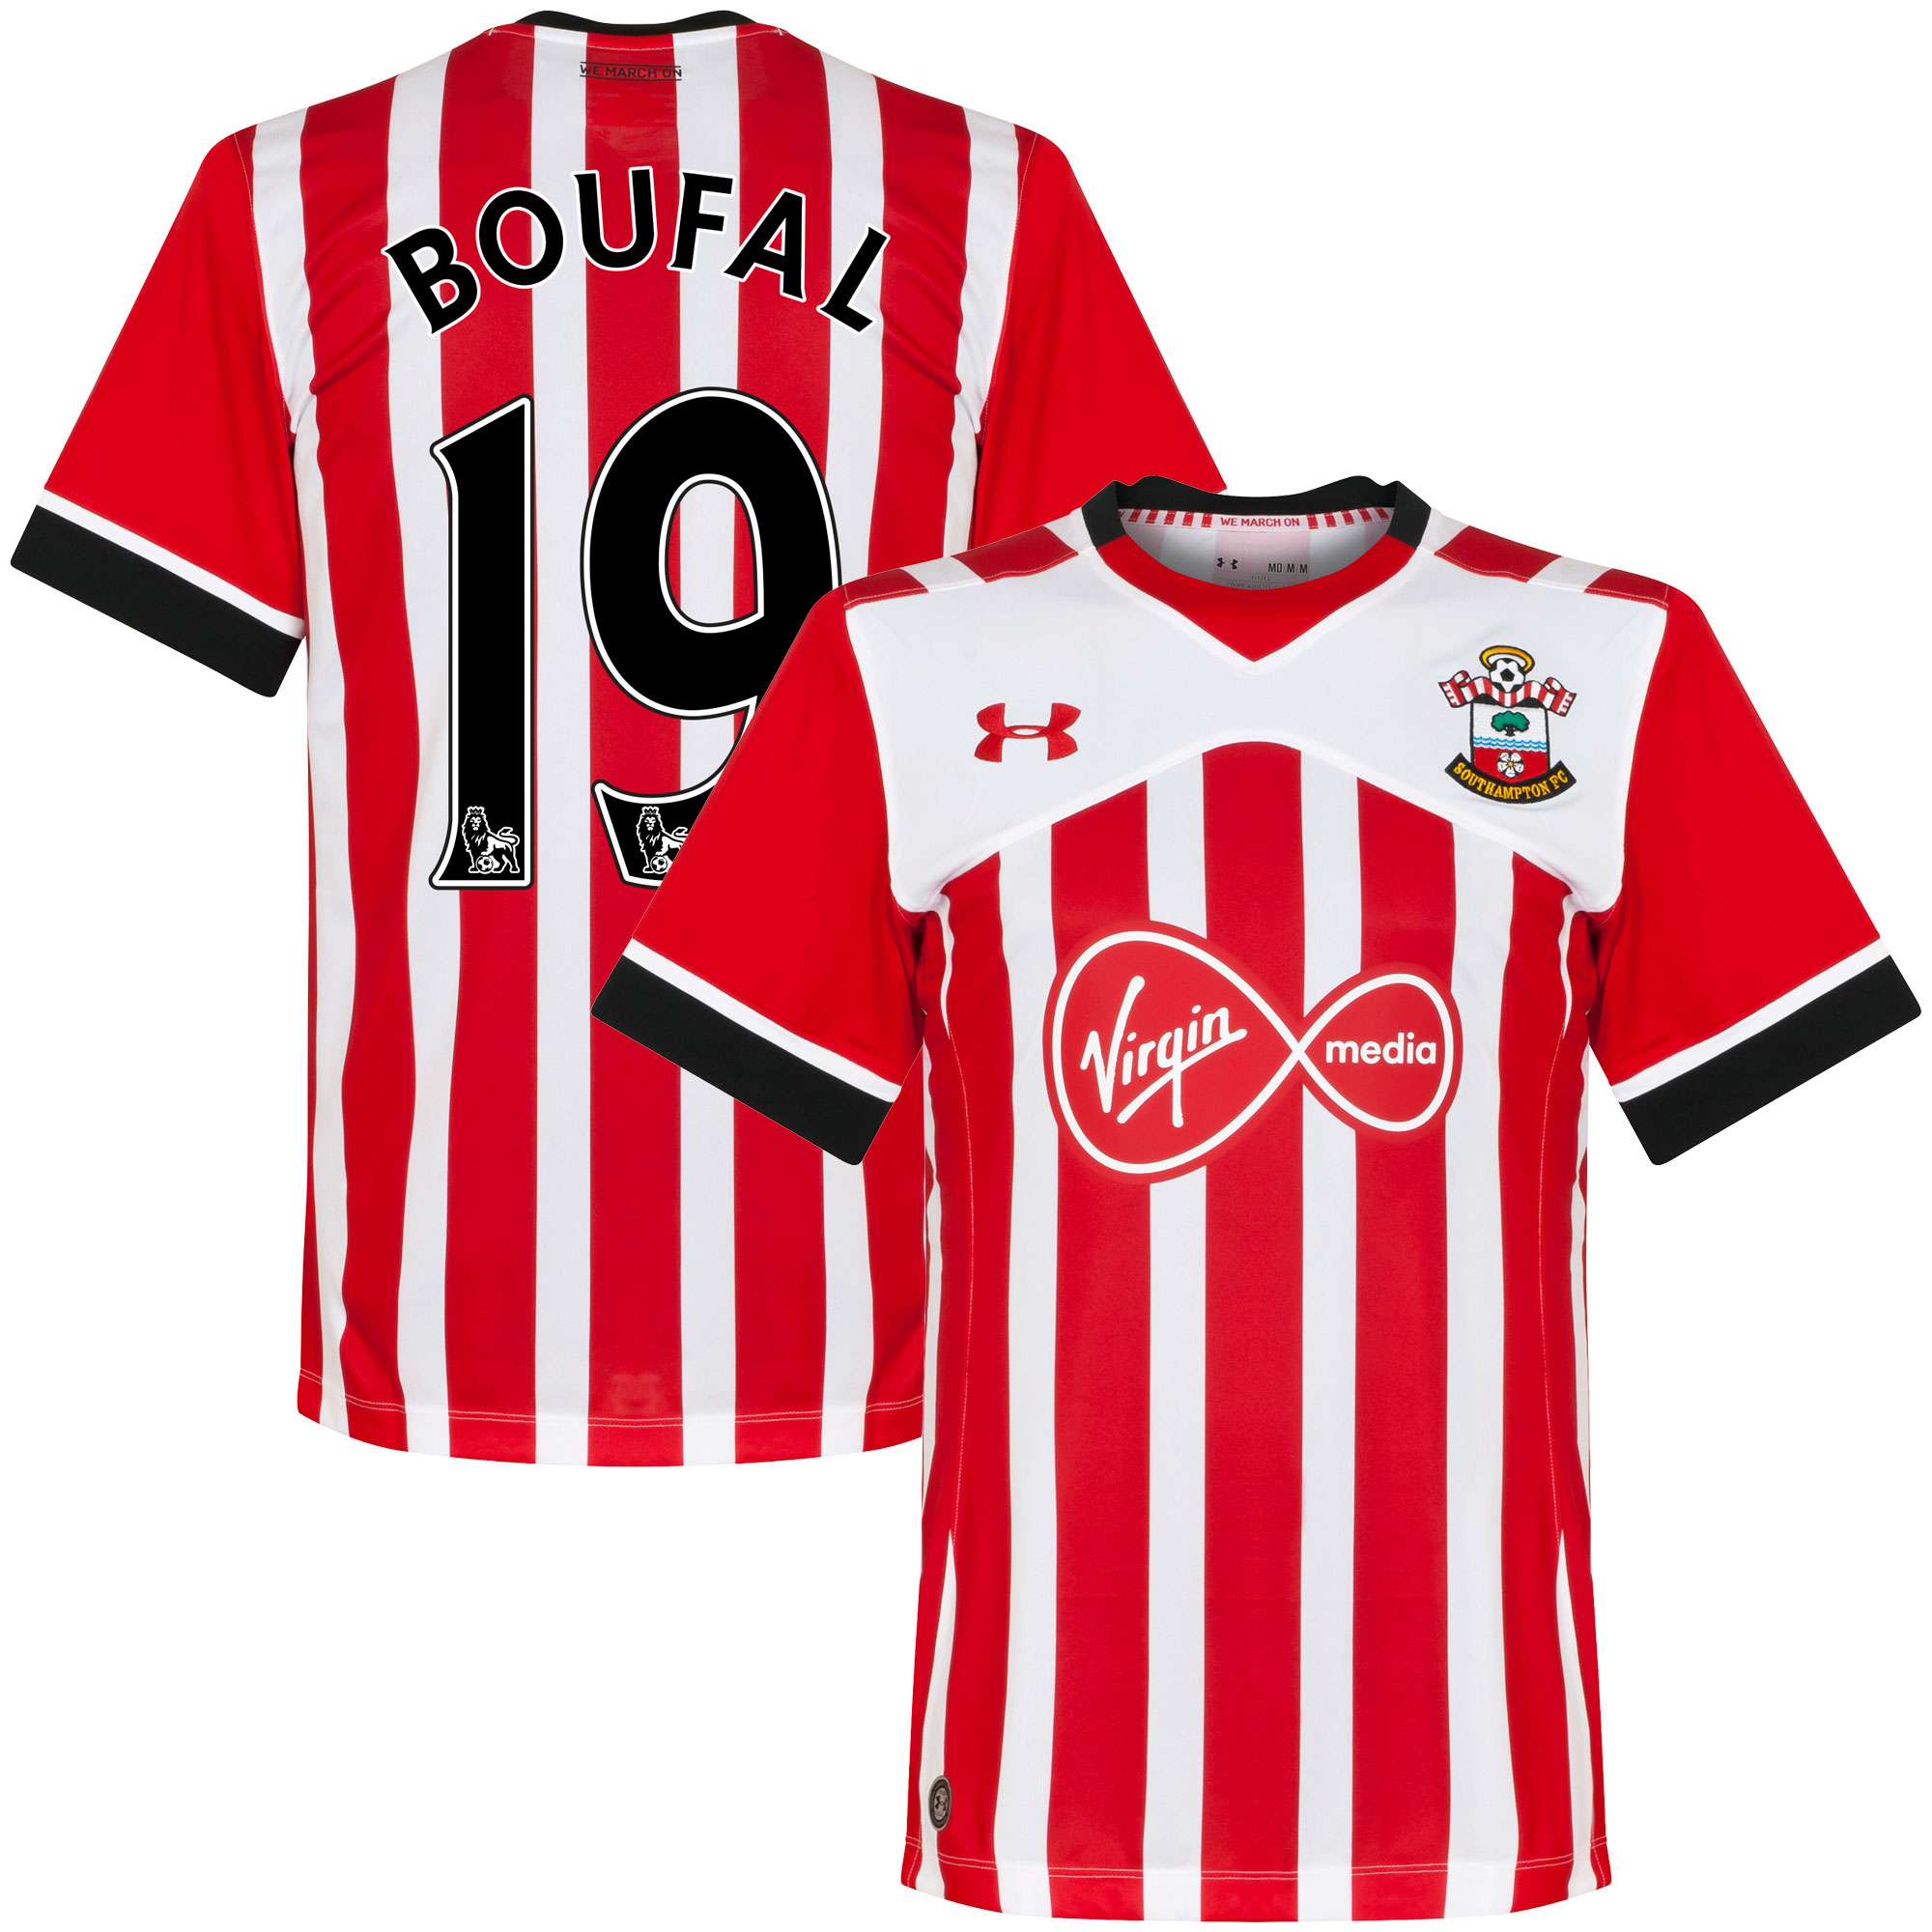 Southampton Home Boufal Jersey 2016 / 2017 (PS-Pro Player Printing) - M